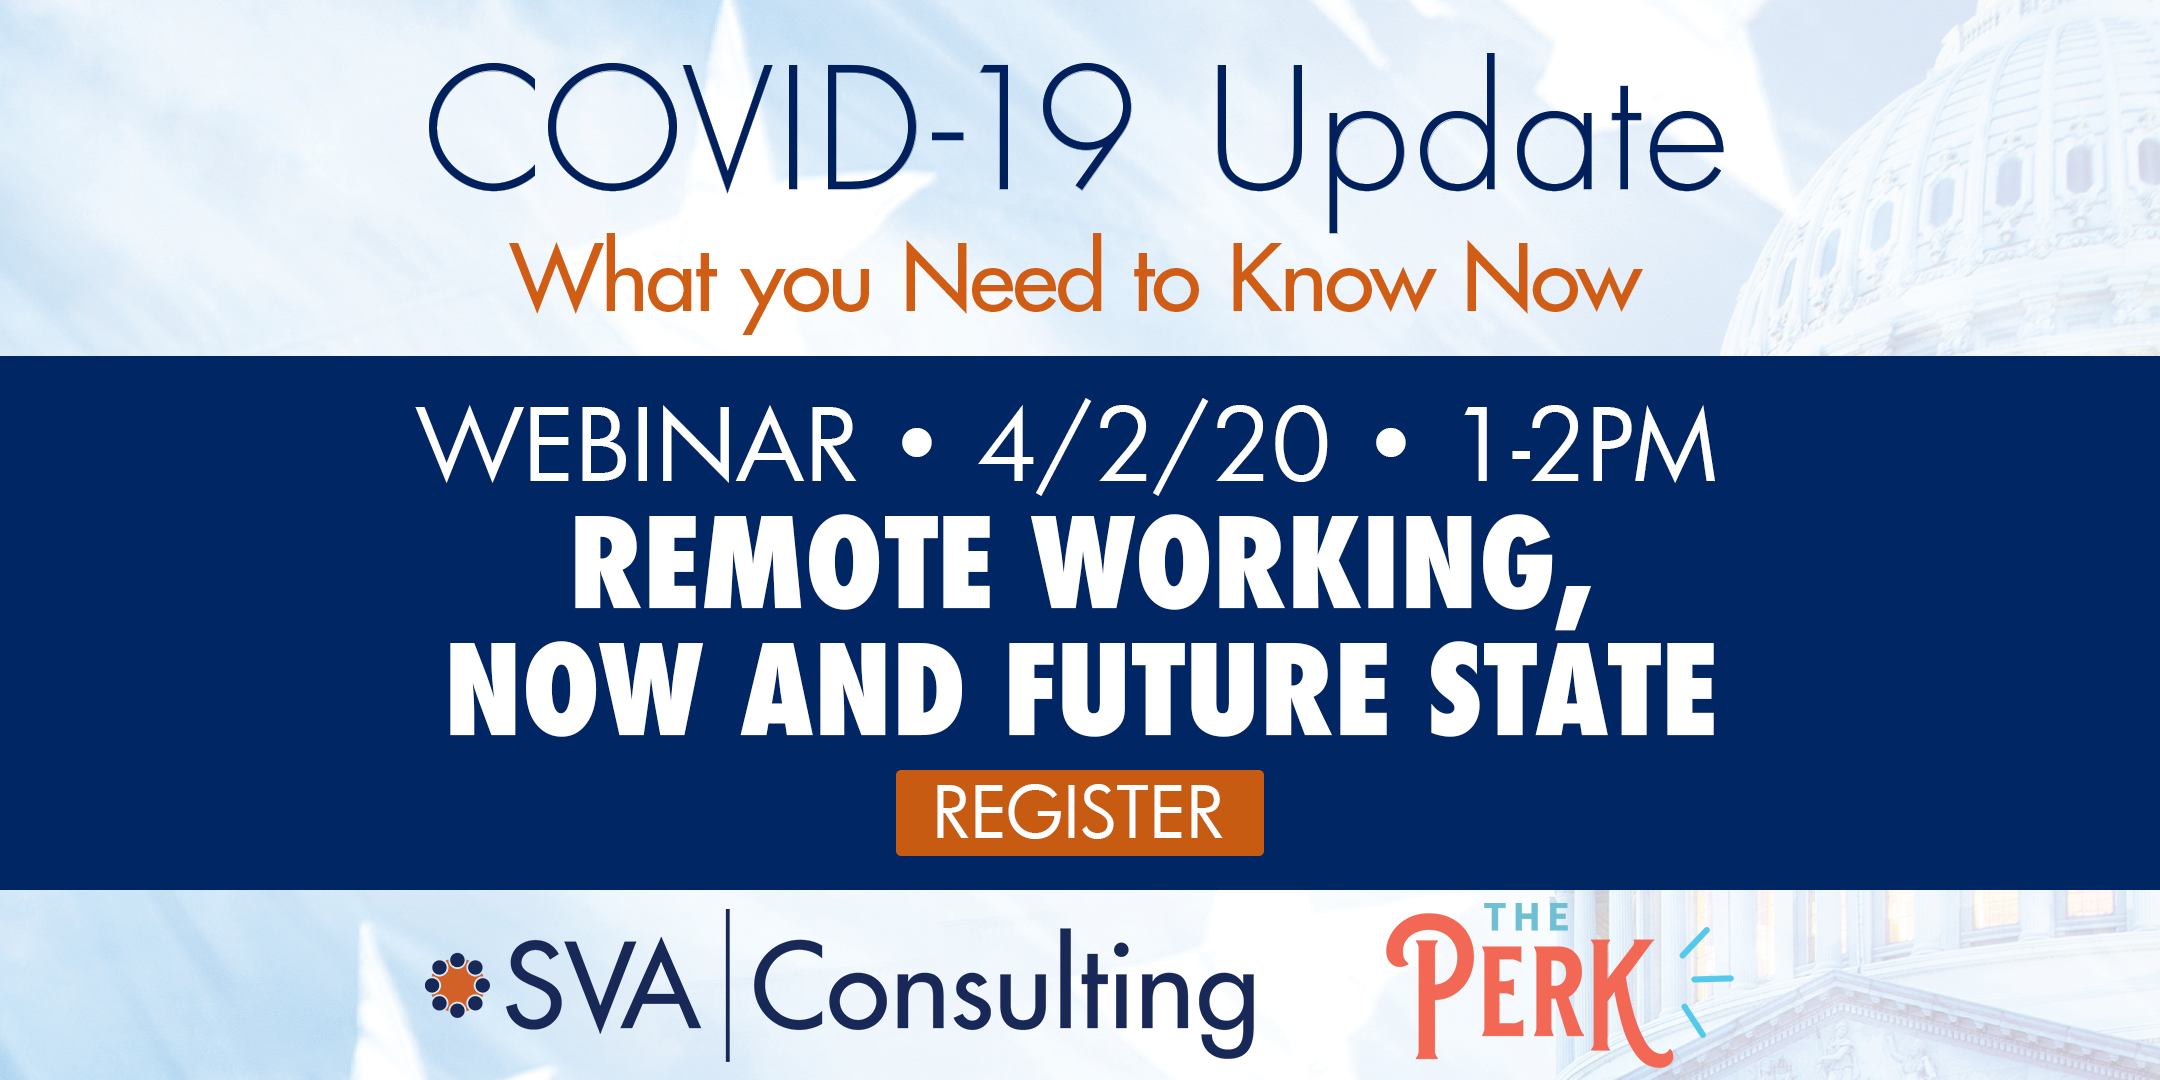 remote-working-now-and-future-state-webinar